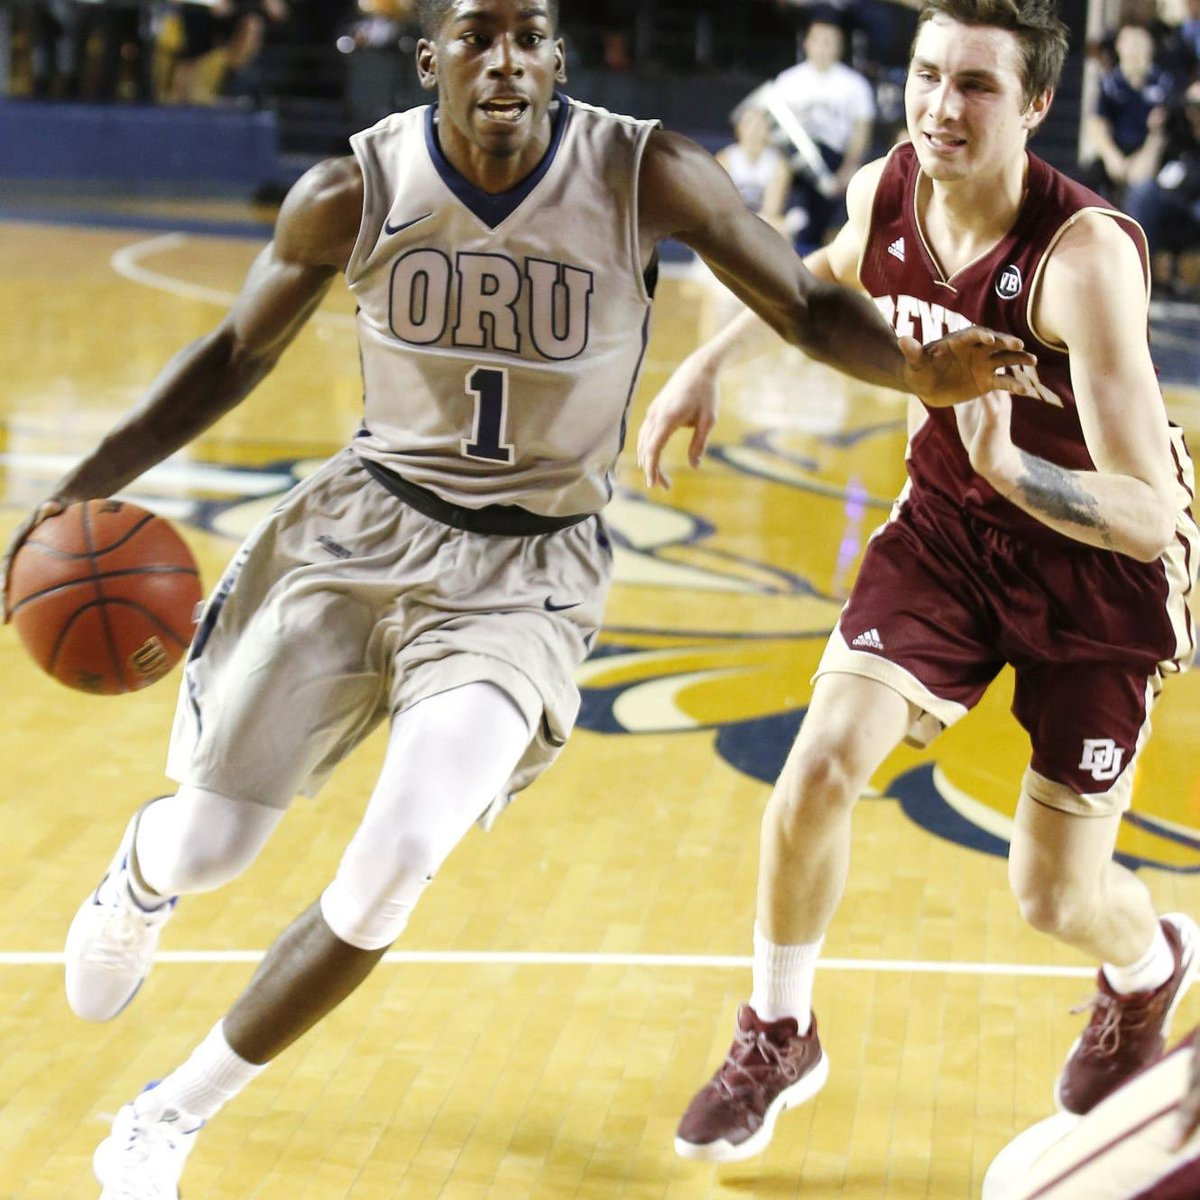 Blessed to receive an offer from Oral Roberts University #GoldenStandard